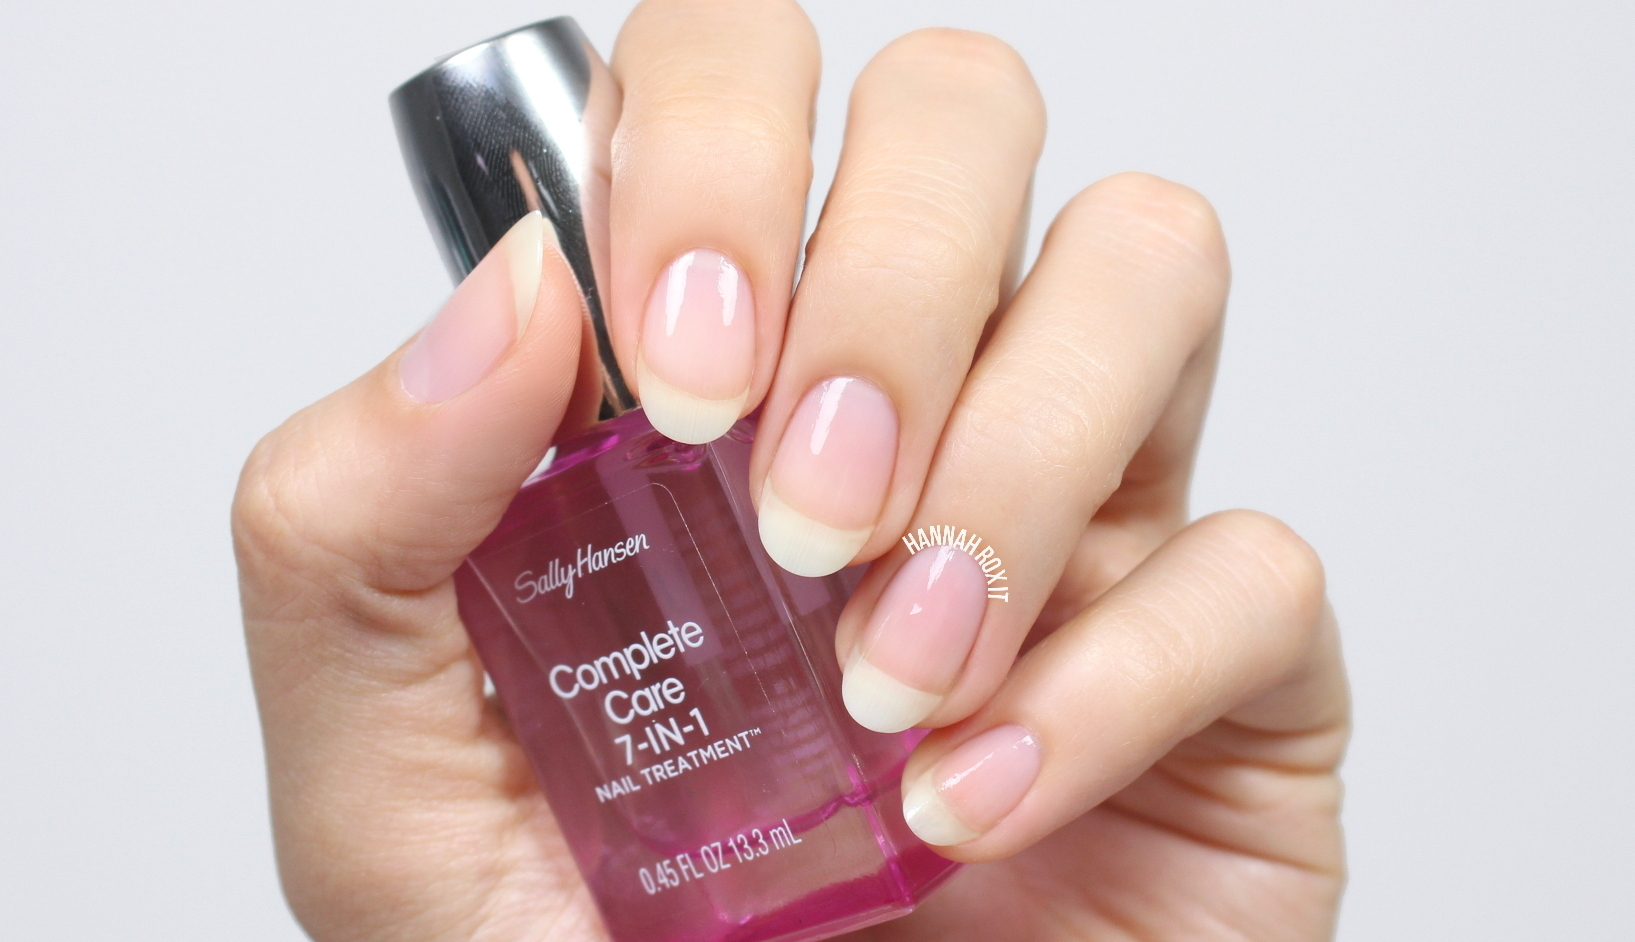 Sally Hansen Complete Care 7-in-1 Review – Hannah Rox It